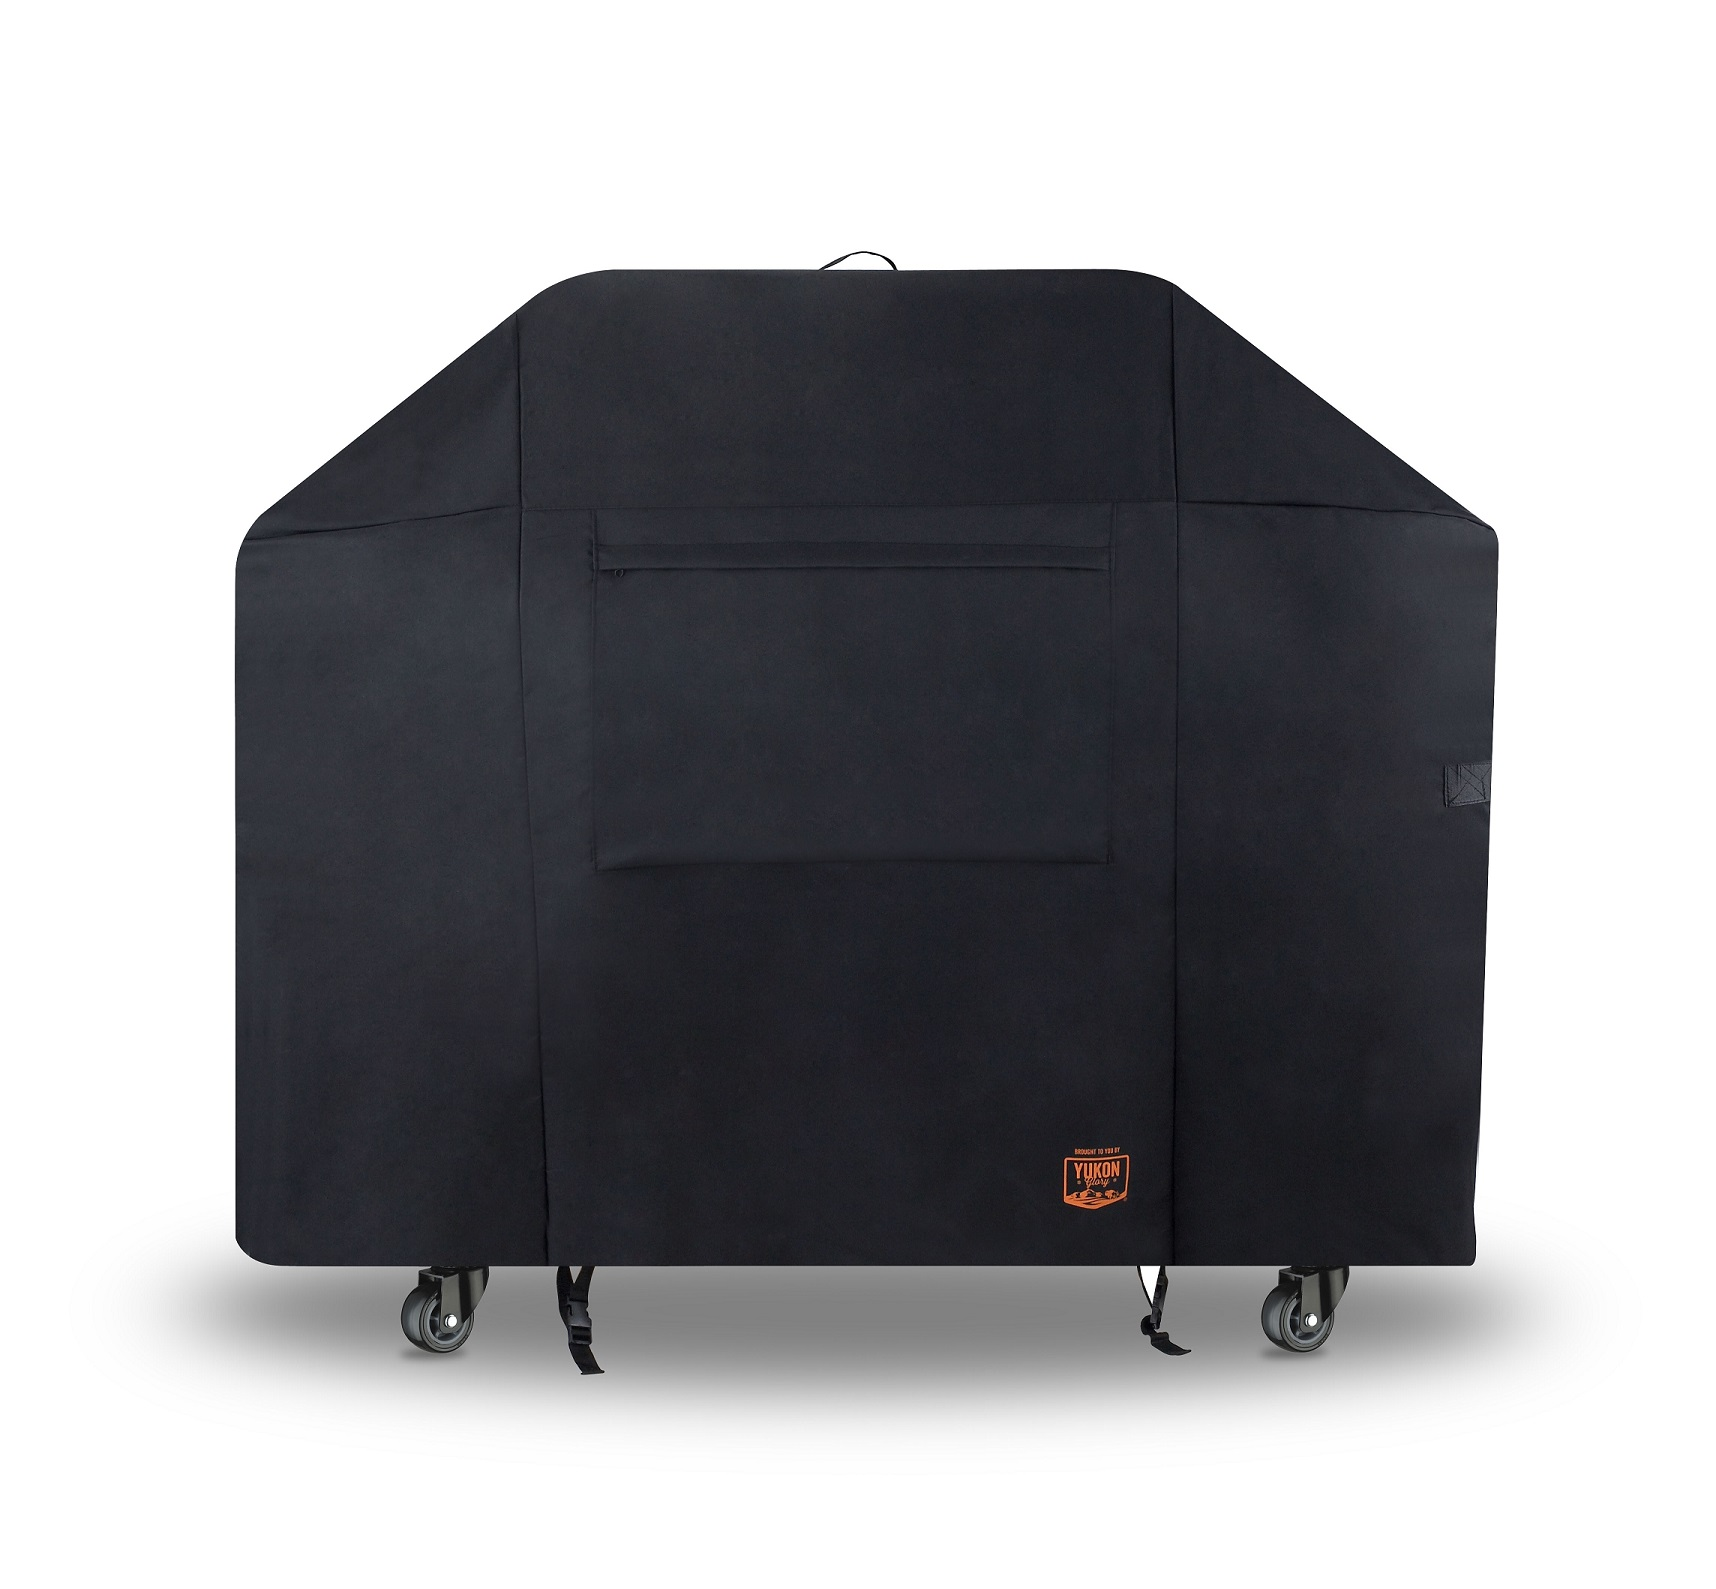 Yukon Glory 7107 Premium Grill Cover for Weber Genesis Gas Grills (Compare to Weber 7107) by Supplier Generic